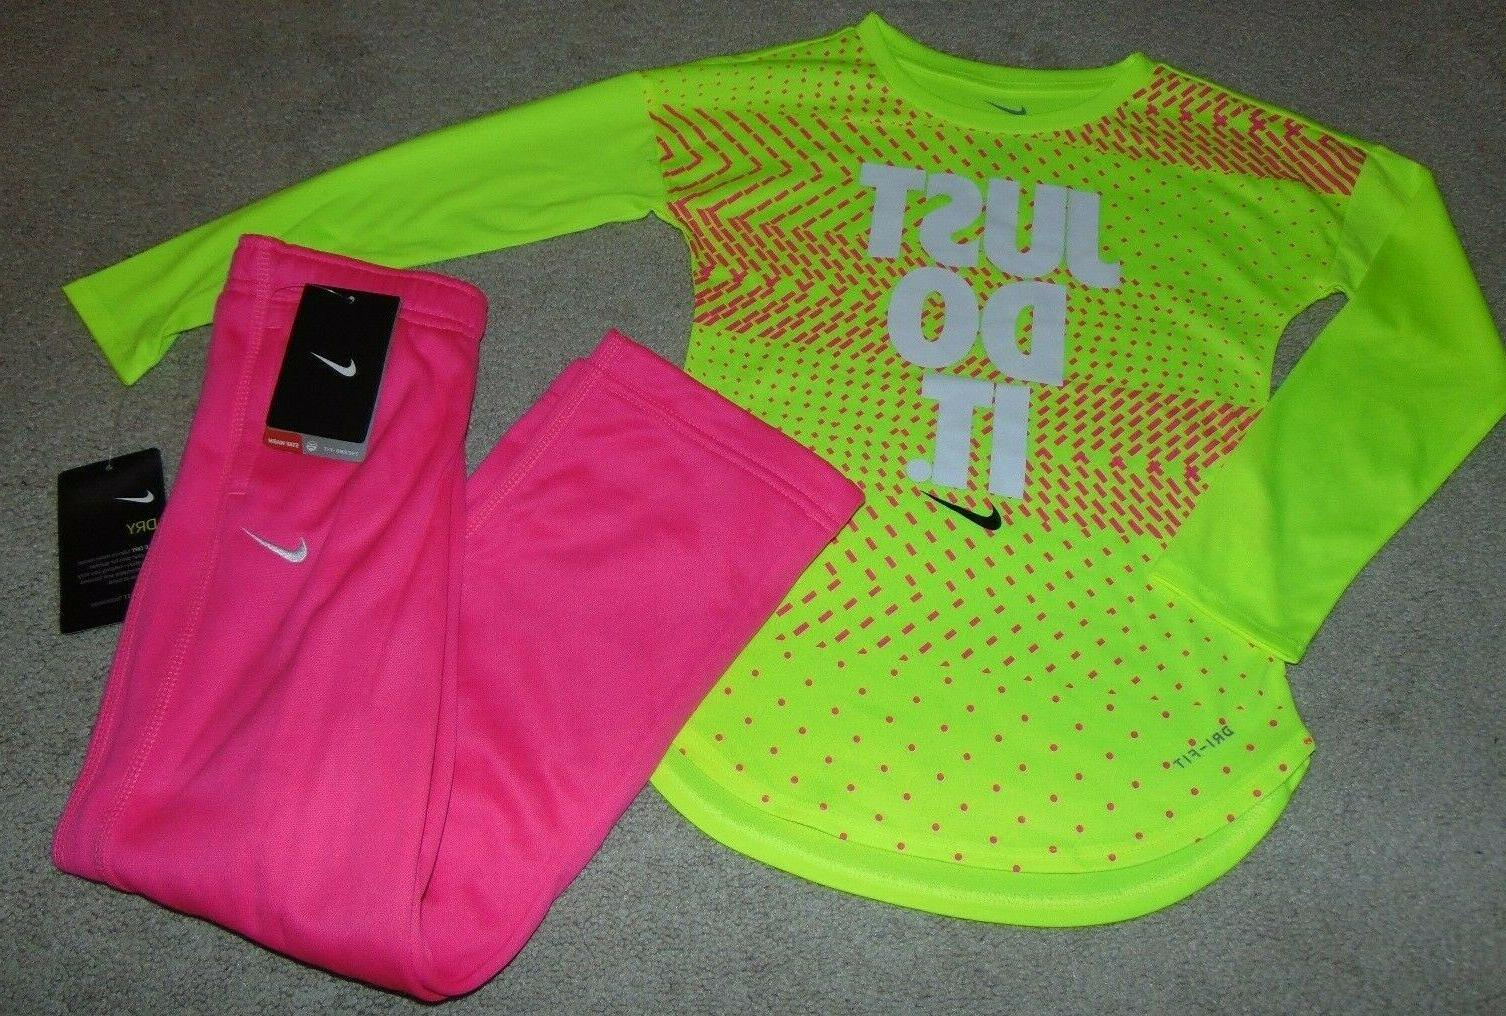 nwt girls neon outfit size 6 6x